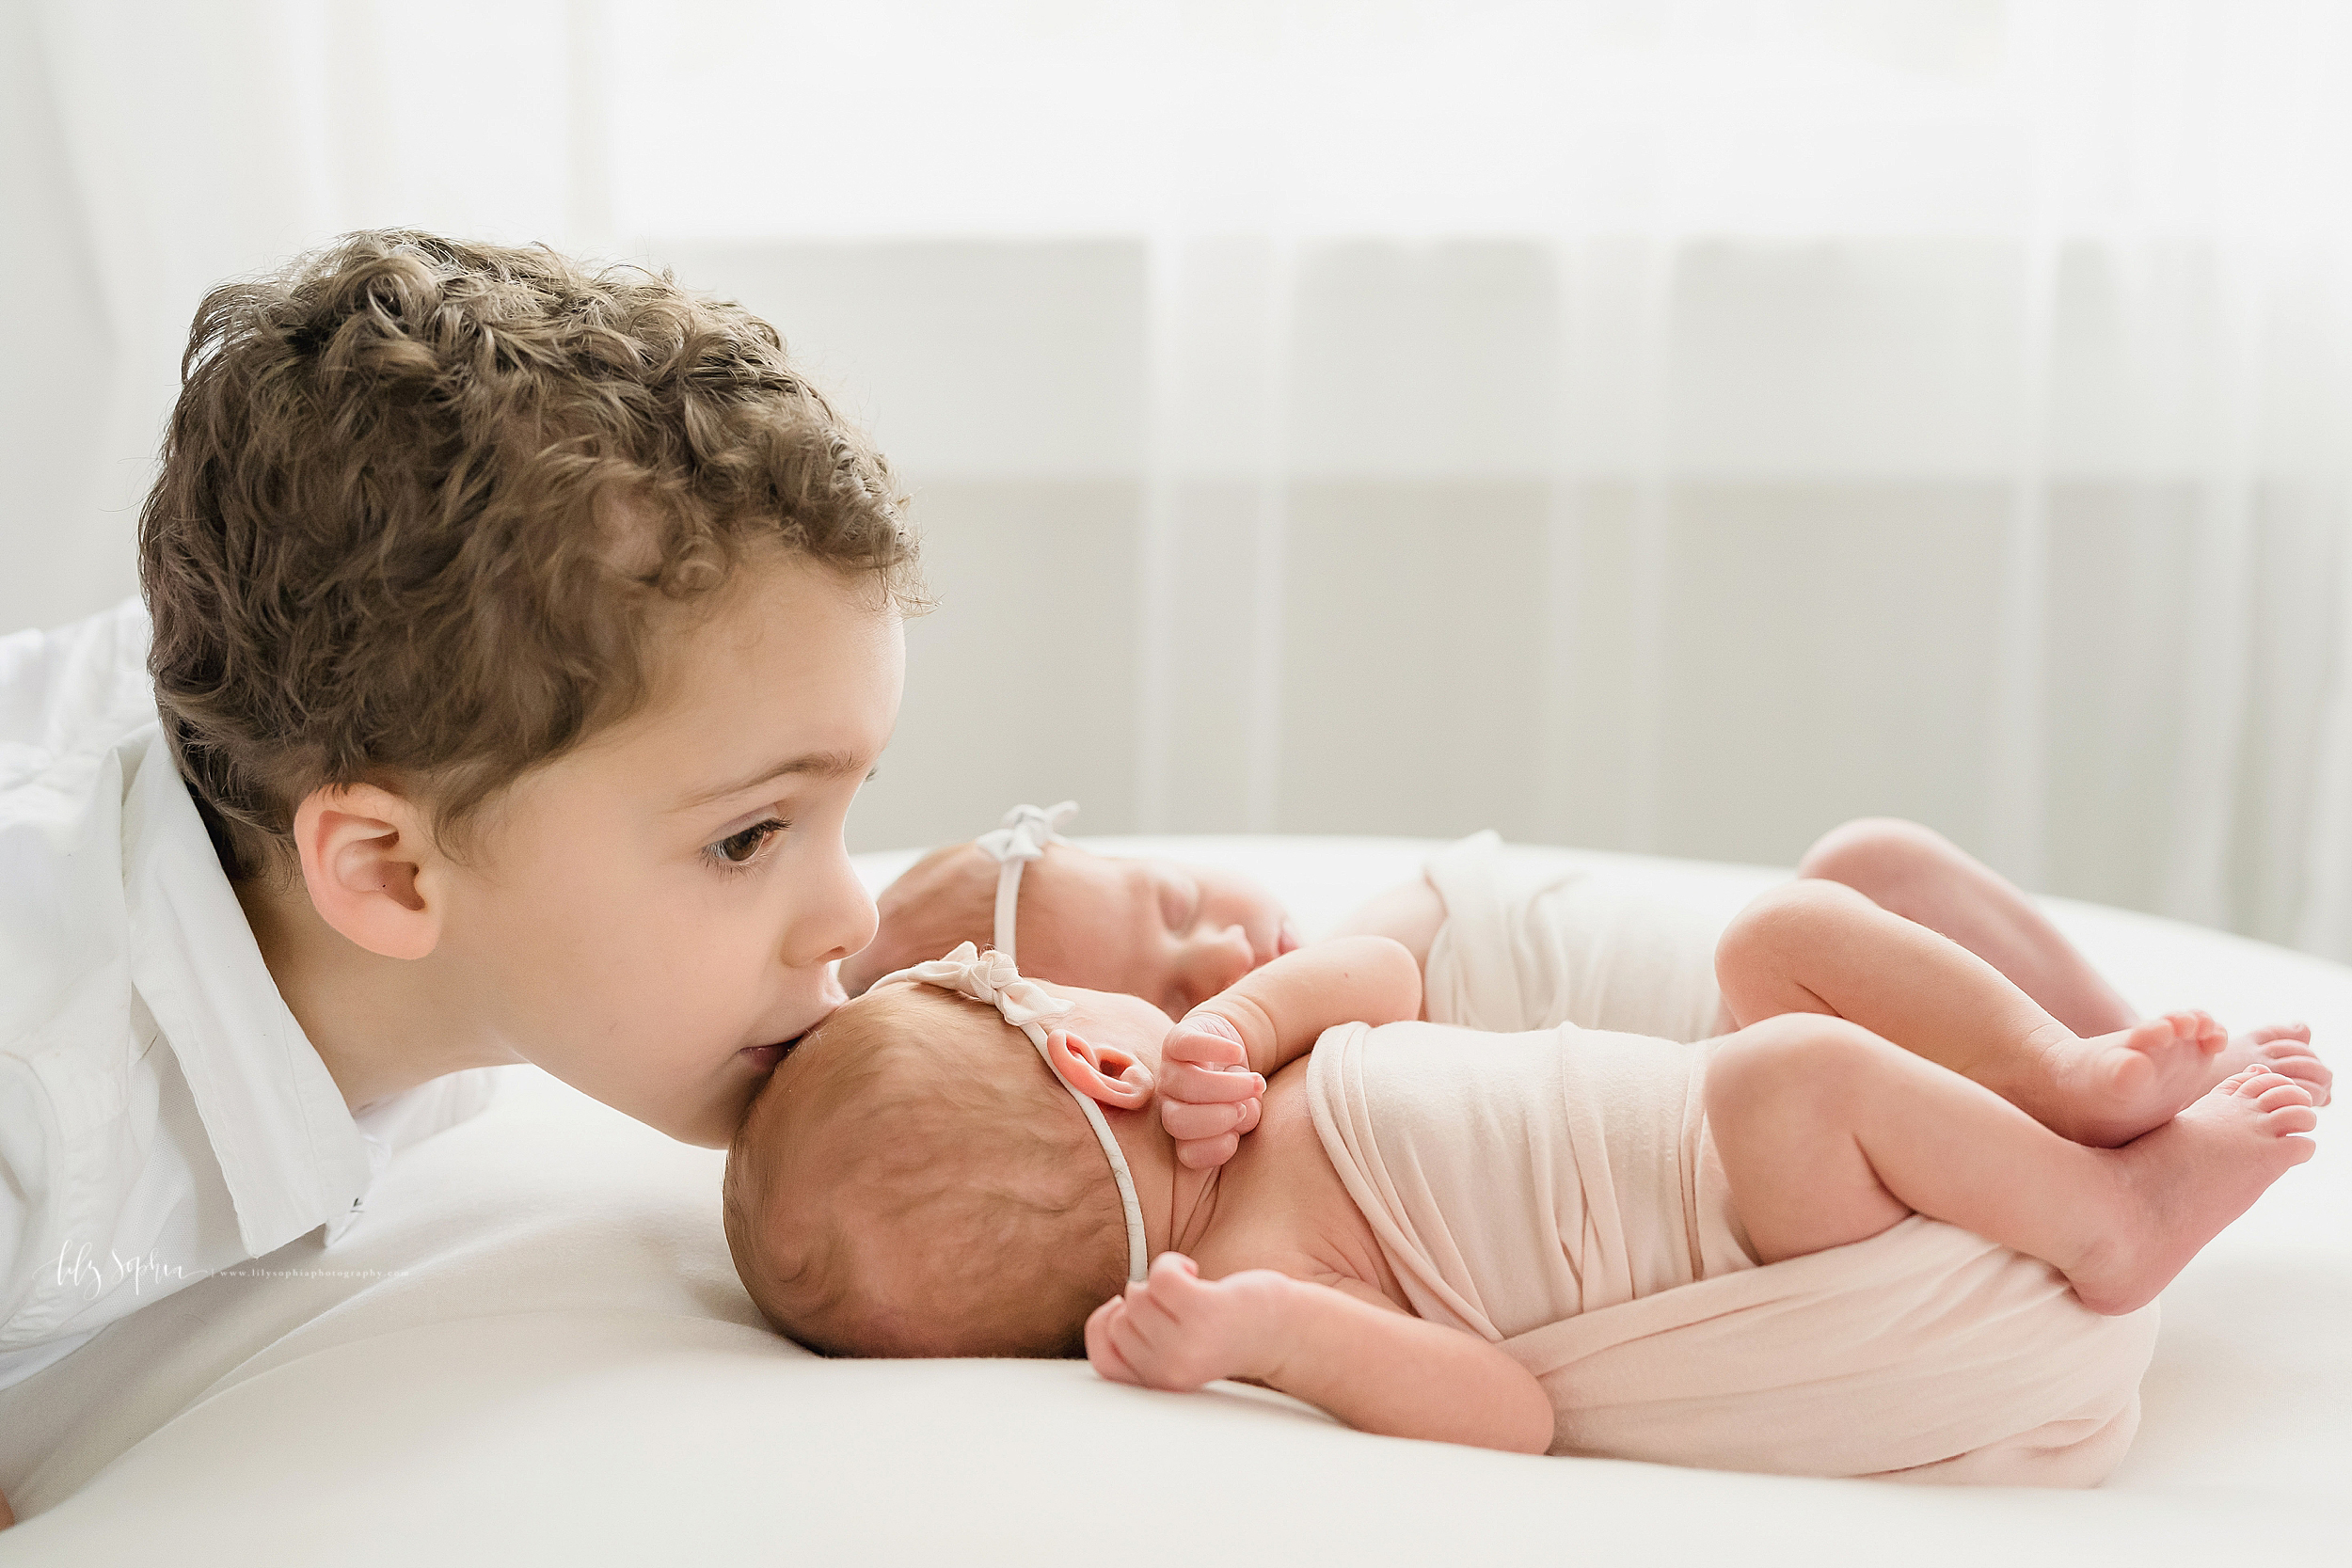 Family photo of a brother and his newborn twin siblings as he kisses the head of his sister while the twins lay on a bed in an Atlanta studio in natural light.